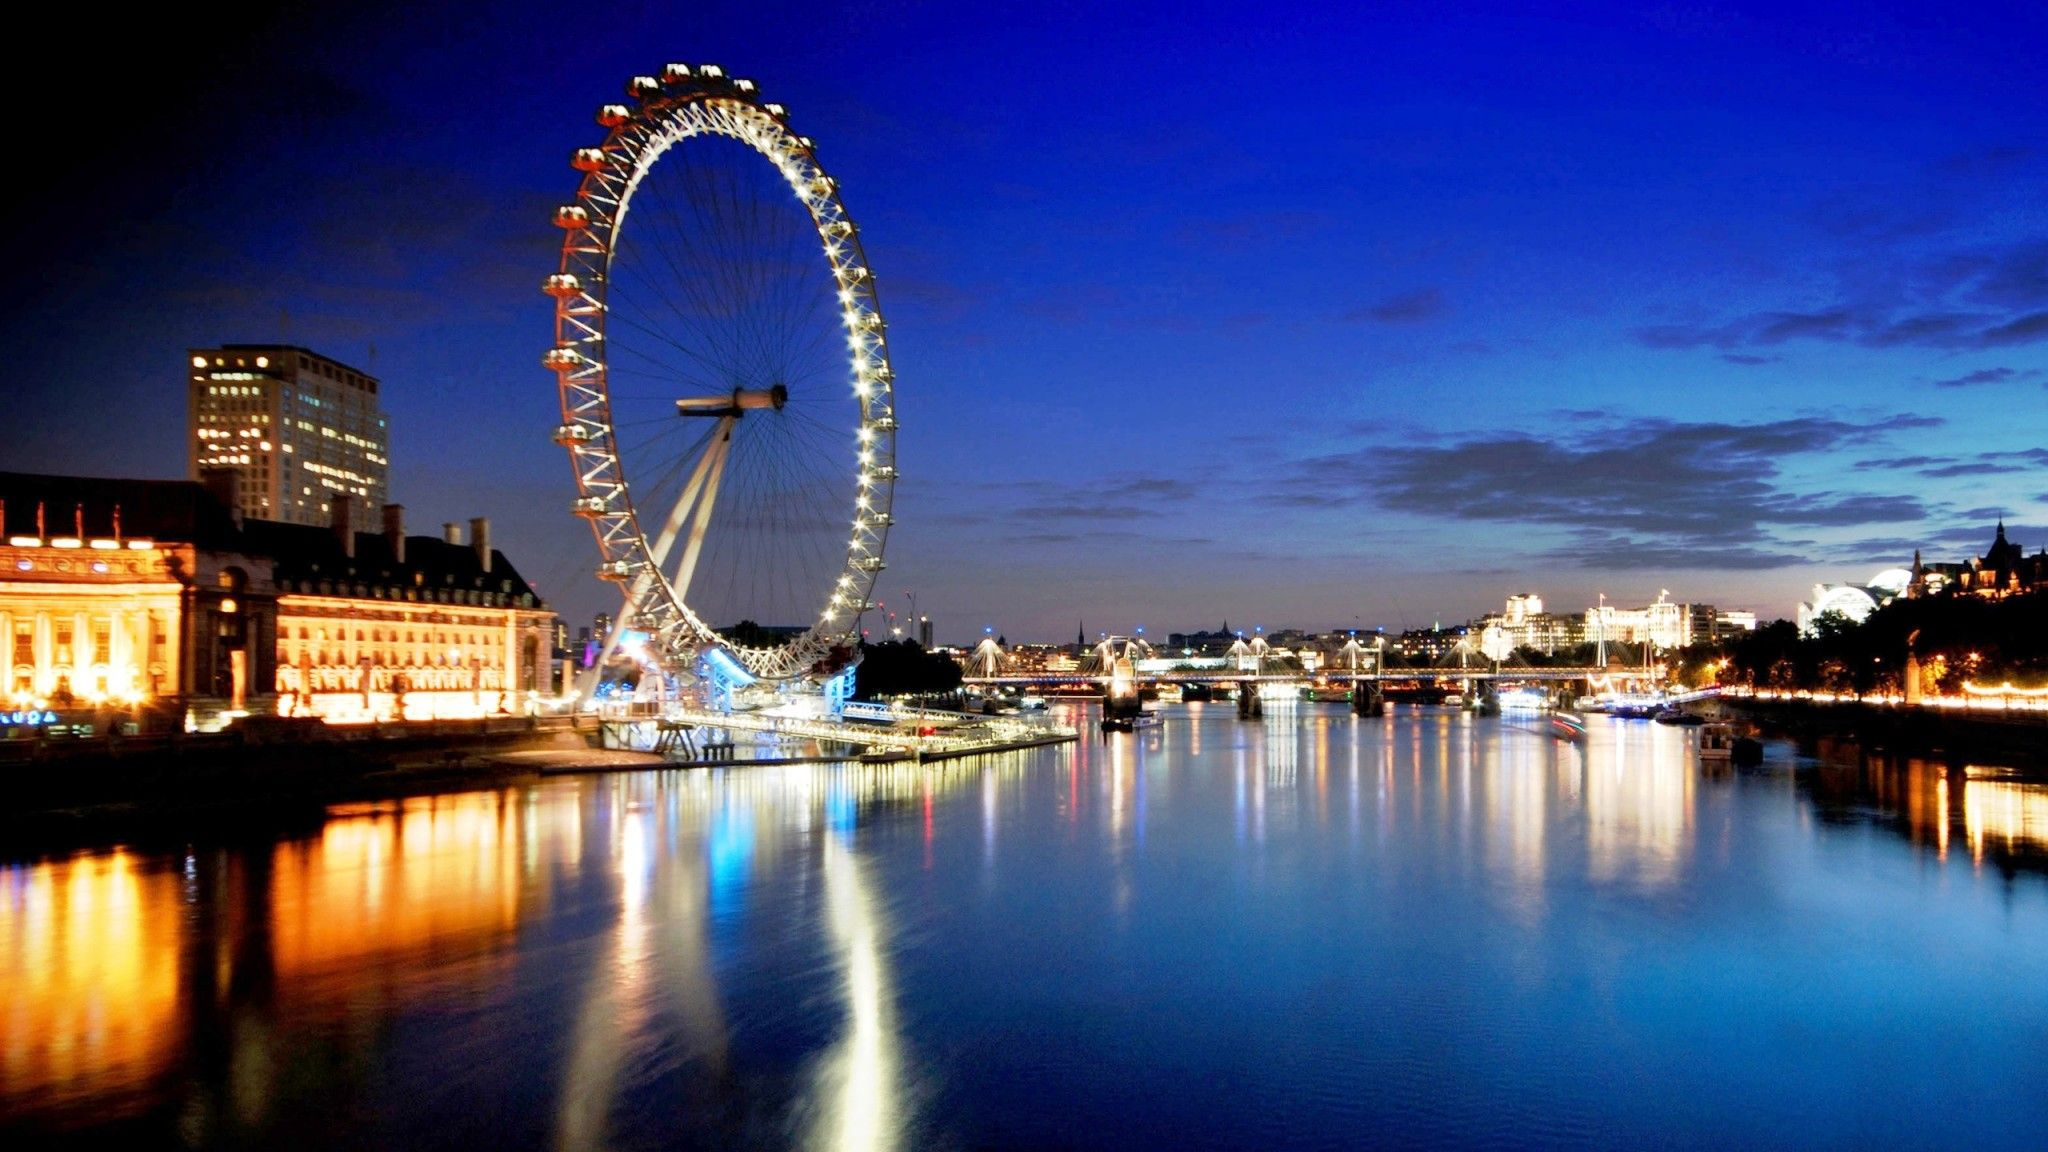 London Eye River Thames at Night HD Wallpaper